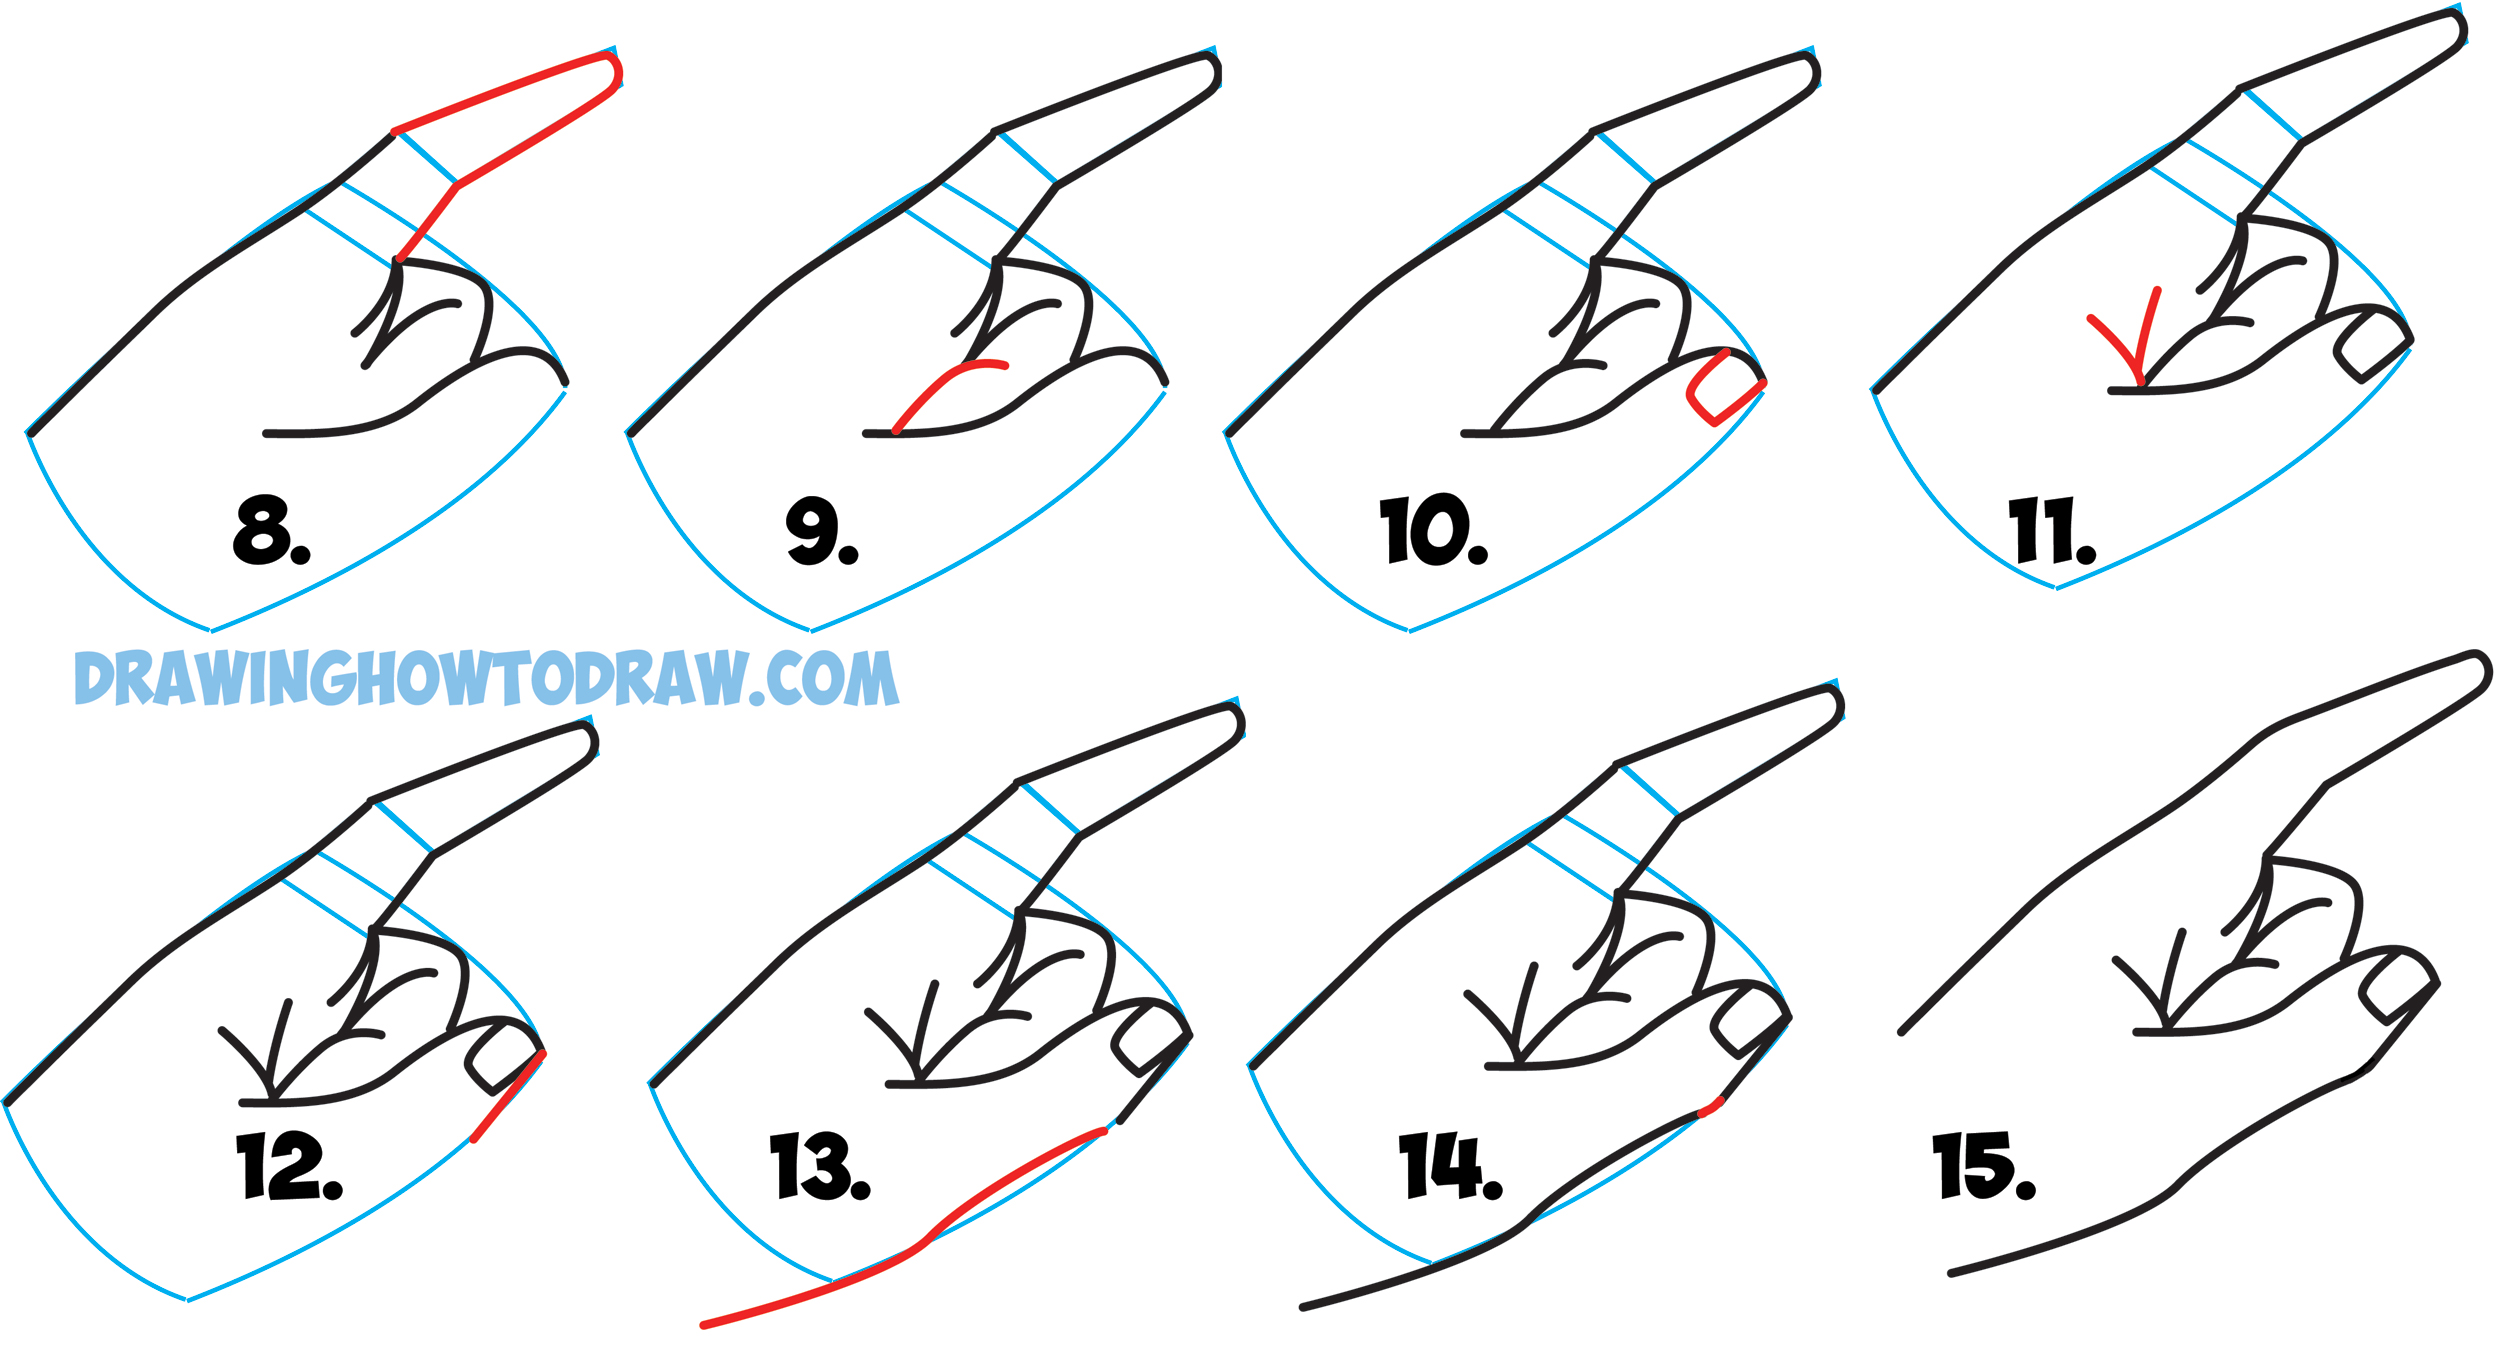 Learn How to Draw a Cartoon Pointing Hand Side View : How to Draw Pointing Fingers - Simple Step by Step Drawing Lesson for Beginners